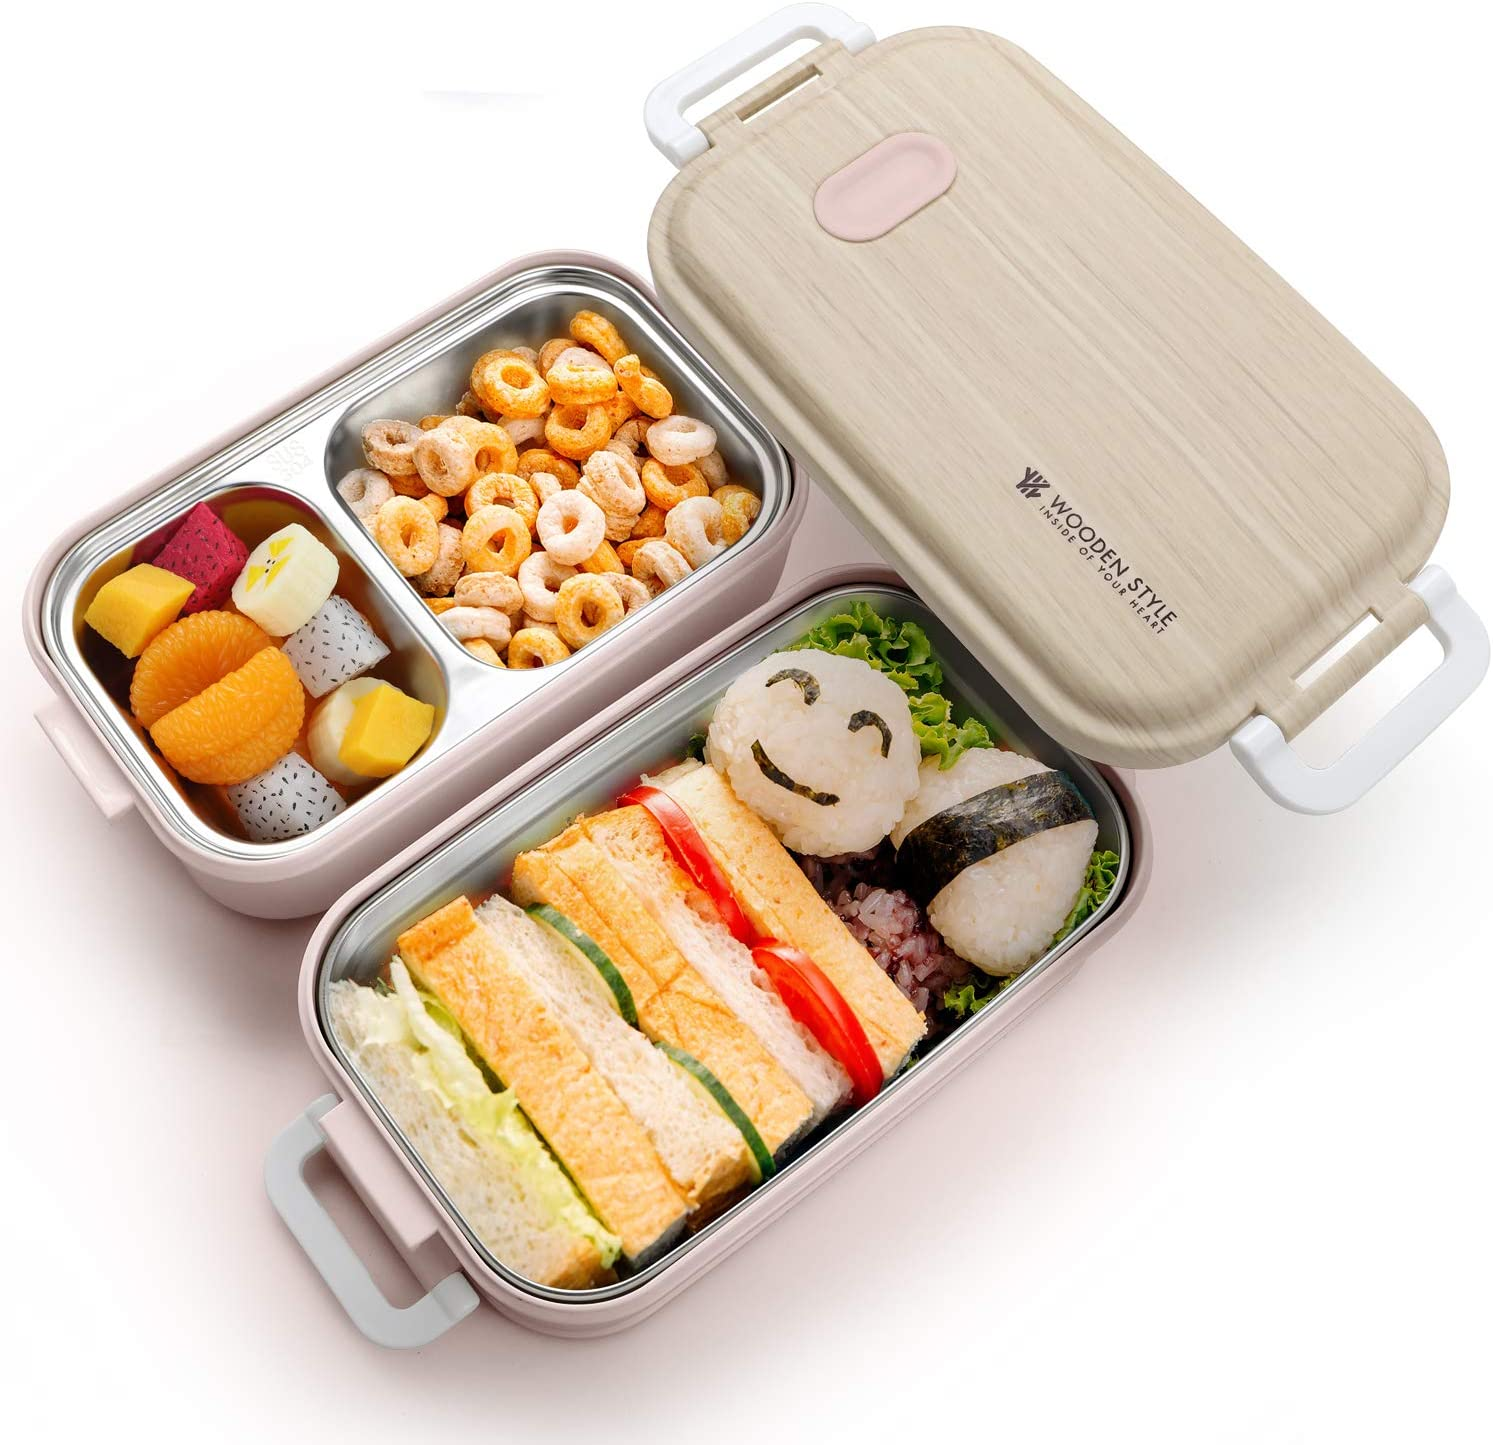 Hometall Stainless Steel Lunch Box with Dual Tiers & 3 Compartments Stackable Bento Stainless Steel Lunch Box, Microwave Freezer Dishwasher Safe, Plastic Outer Cover (Japanese Grain Style)